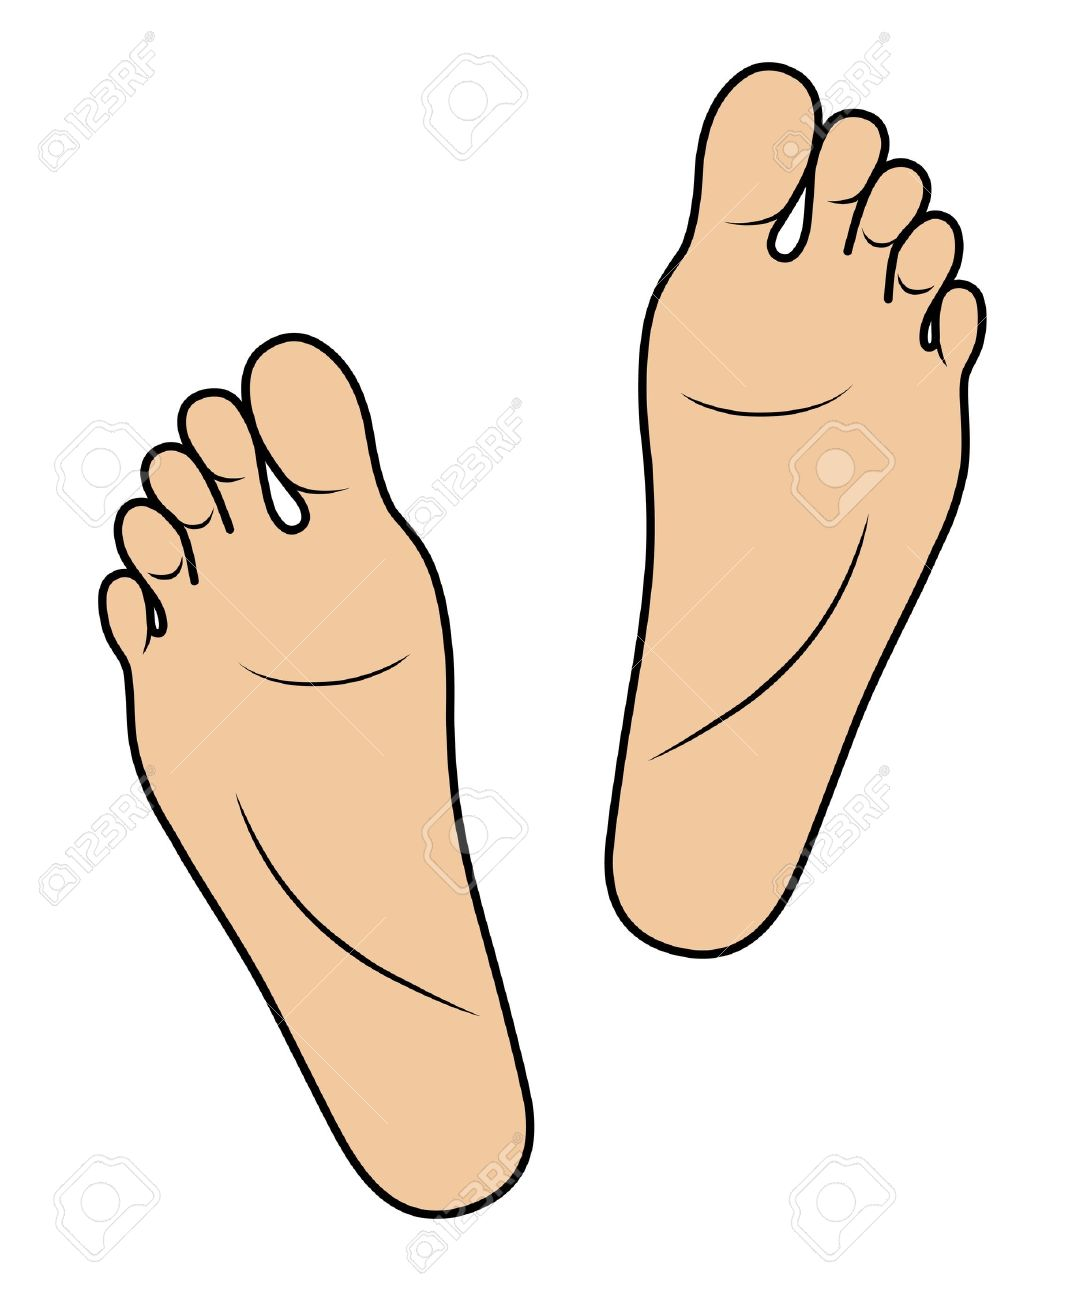 png transparent download Foot clip art free. Feet clipart